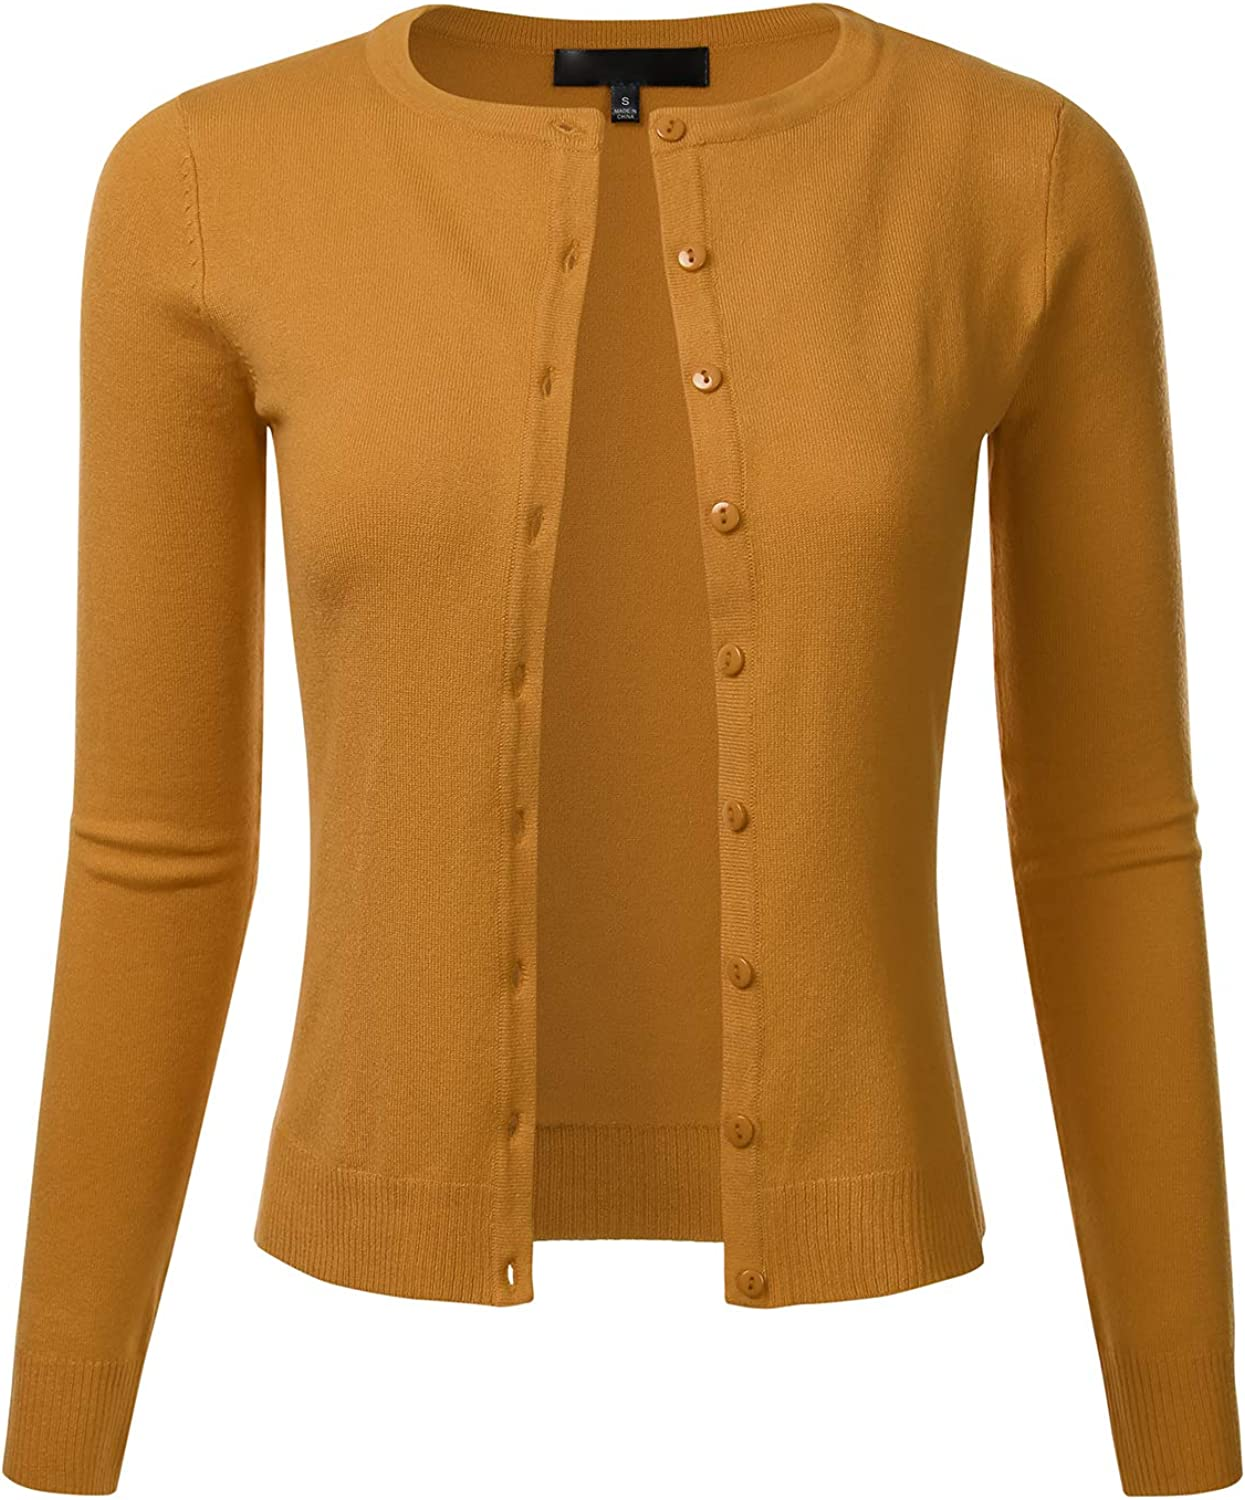 FLORIA Women's Slim Fit Long Sleeve Button Down Crew Neck Knit Cardigan Sweater